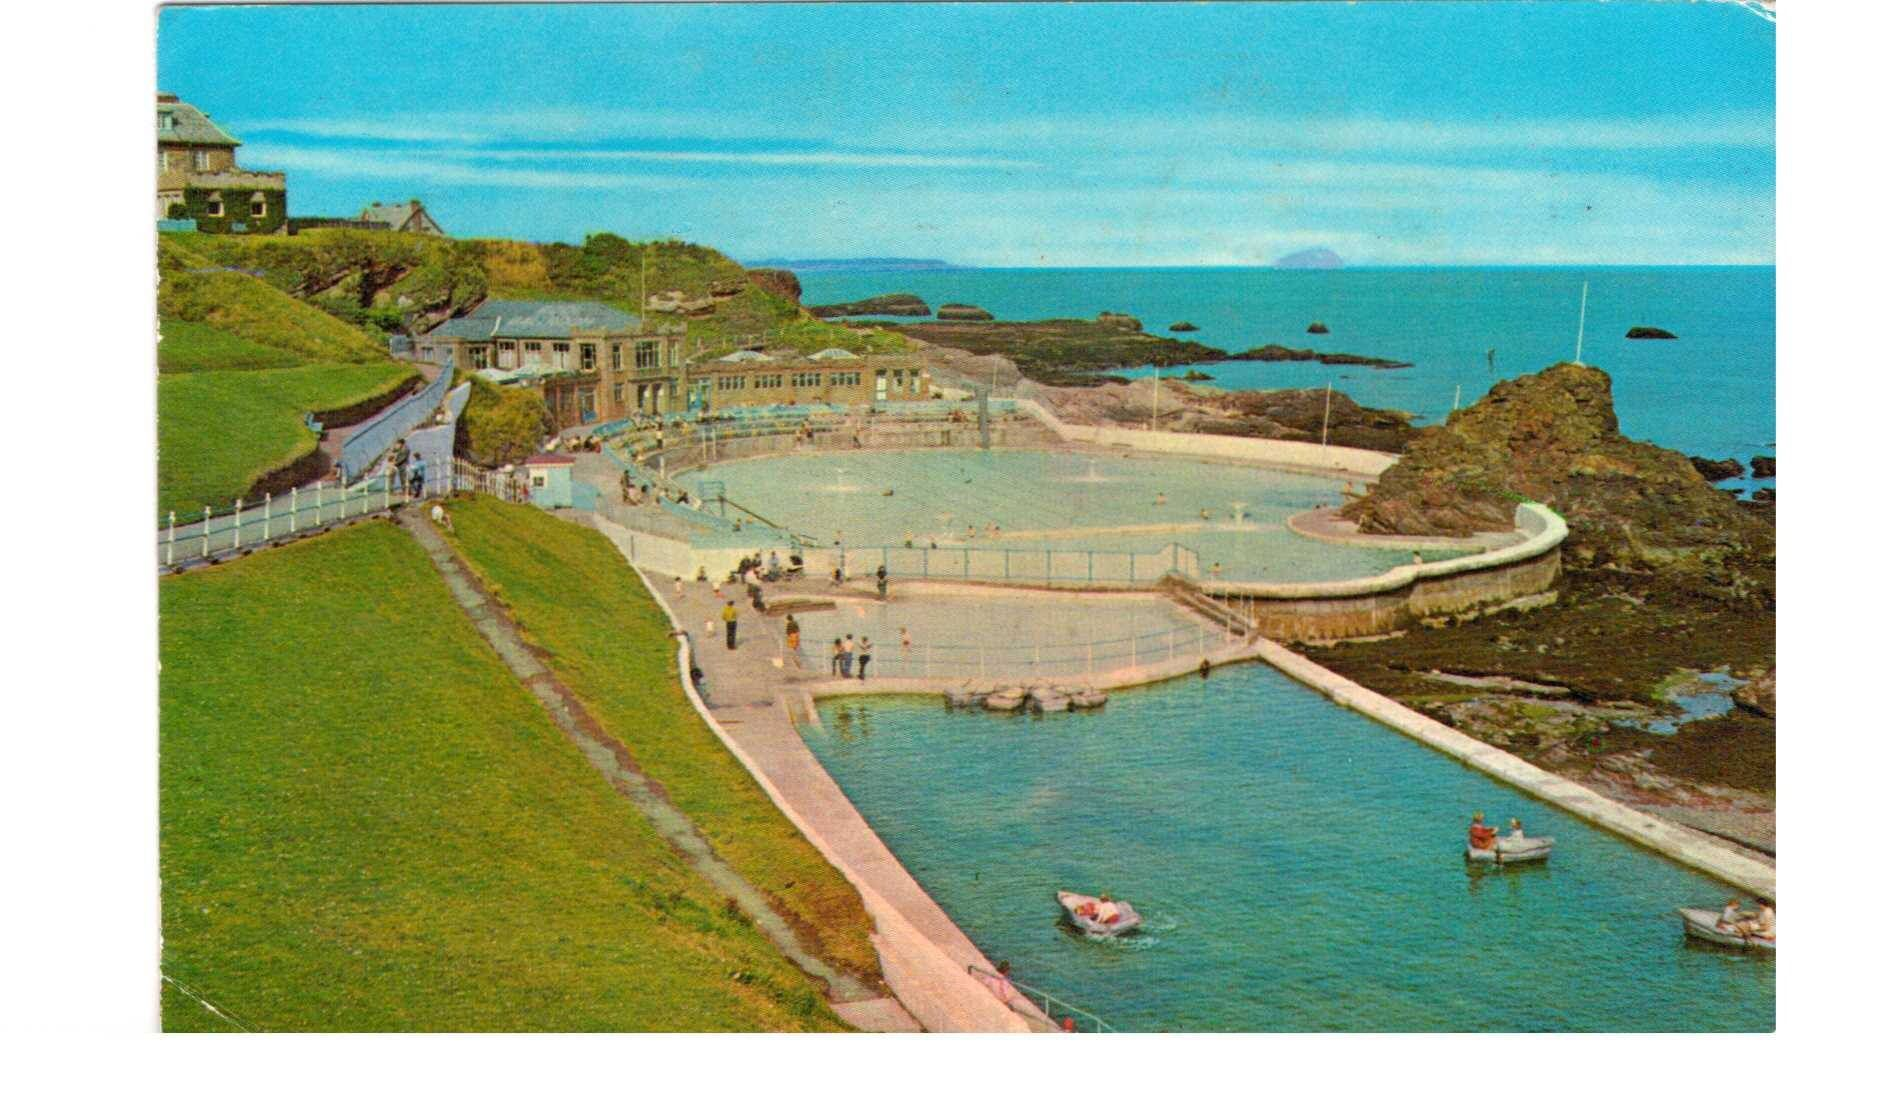 Dunbar outdoor swimming pool 1974 dunbar scotland dunbar clan pinterest scotland for Portobello outdoor swimming pool